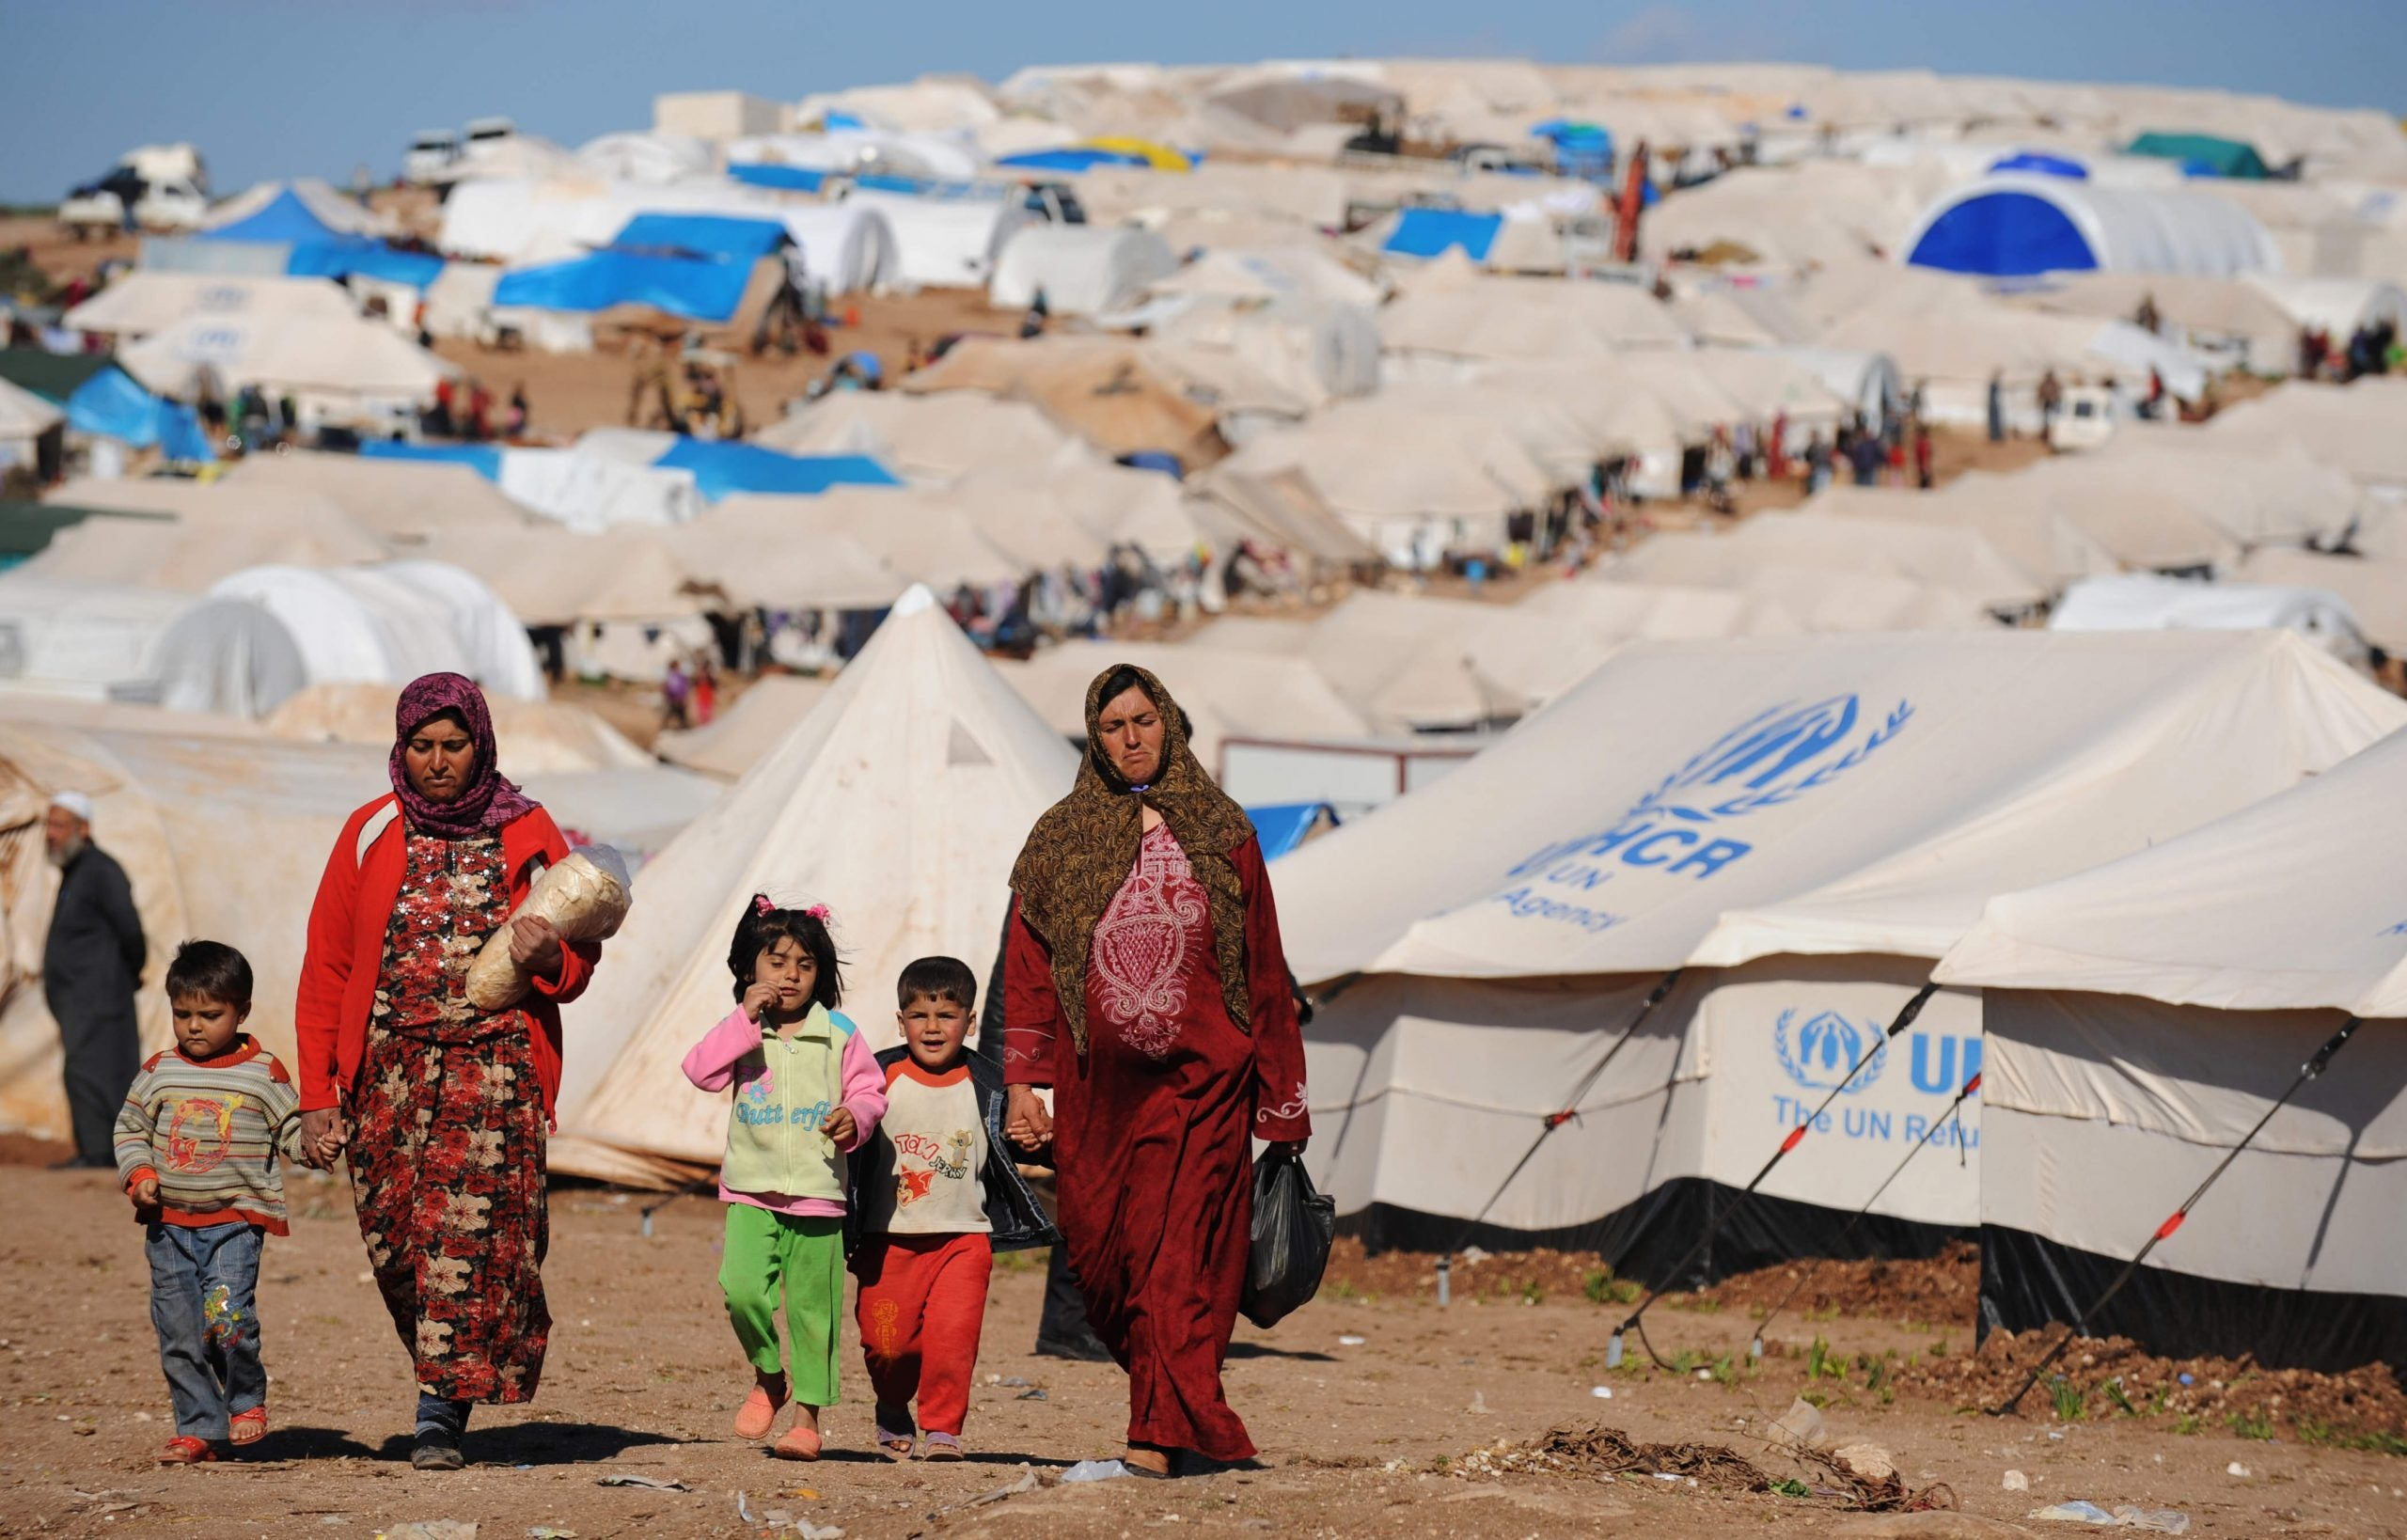 """""""We are human beings"""": Khaled Hosseini on the story of Syria's refugees"""